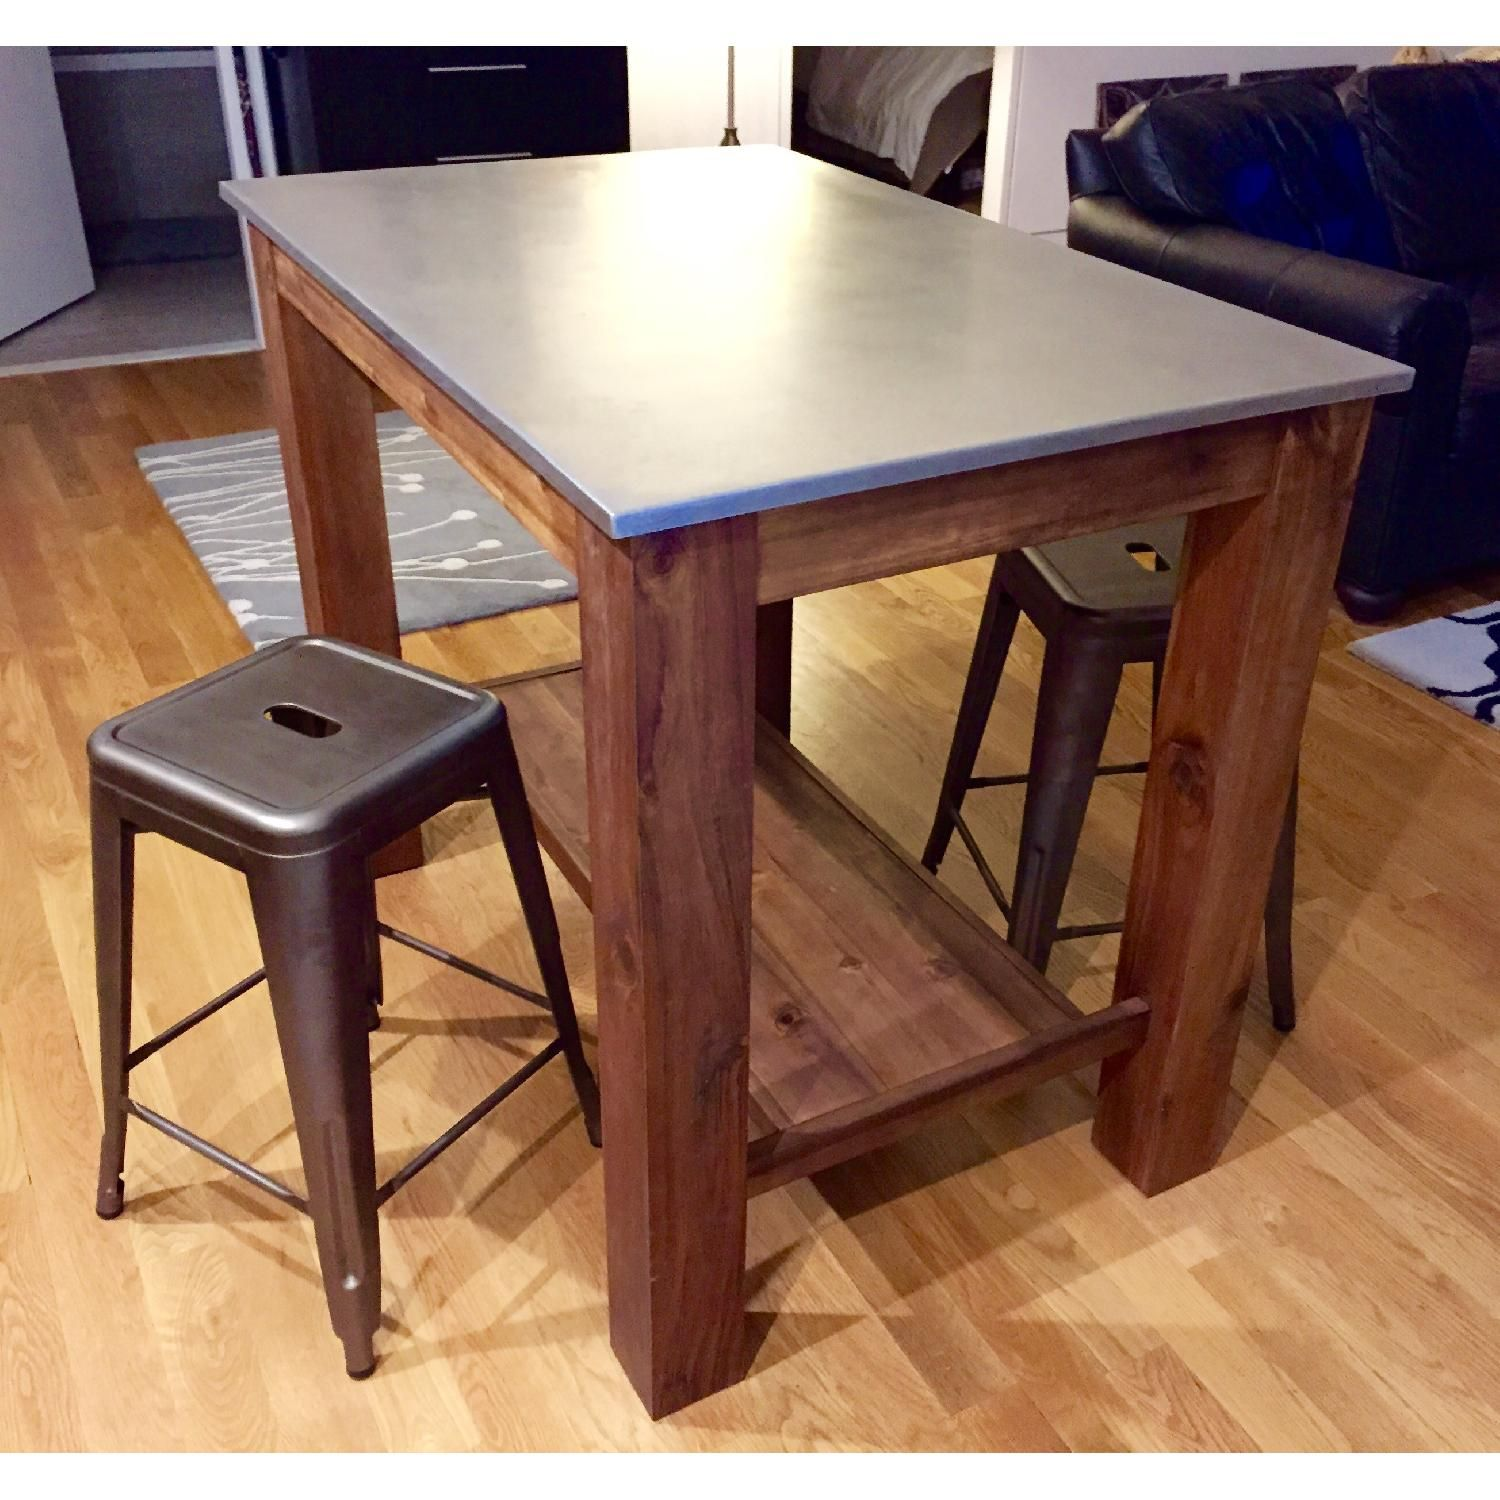 Office Kitchen Tables: West Elm Rustic Kitchen Island/ Bar Table W/ 2 Crate